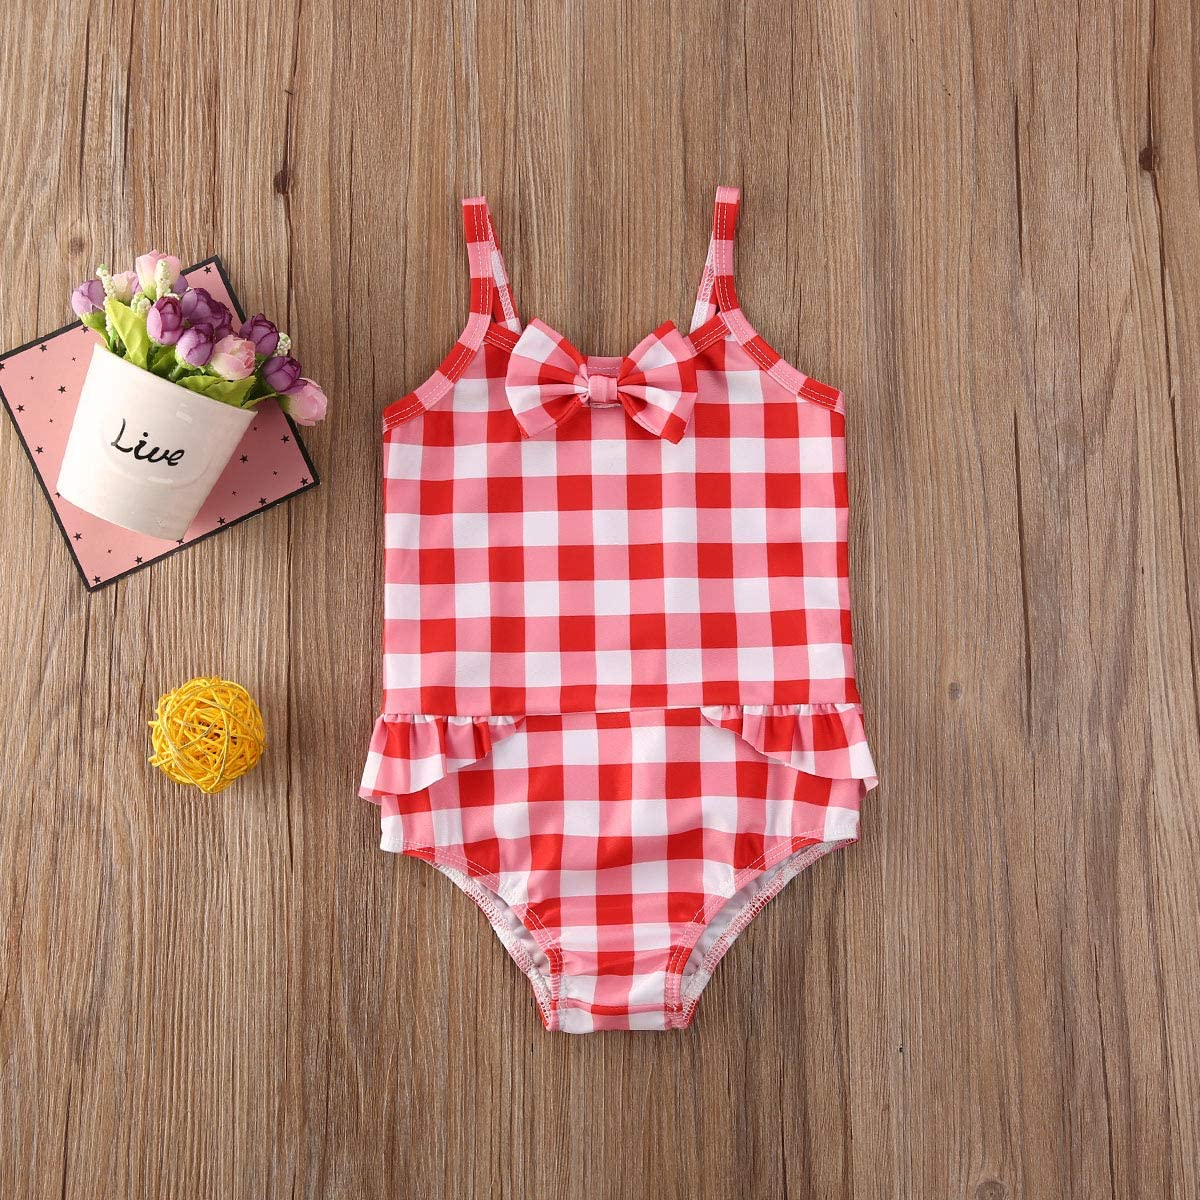 LXXIASHI Toddler Kids Baby Girl Sunflower One Piece Swimsuits Quick Dry Beach Swimwear Bathing Suit for Beach